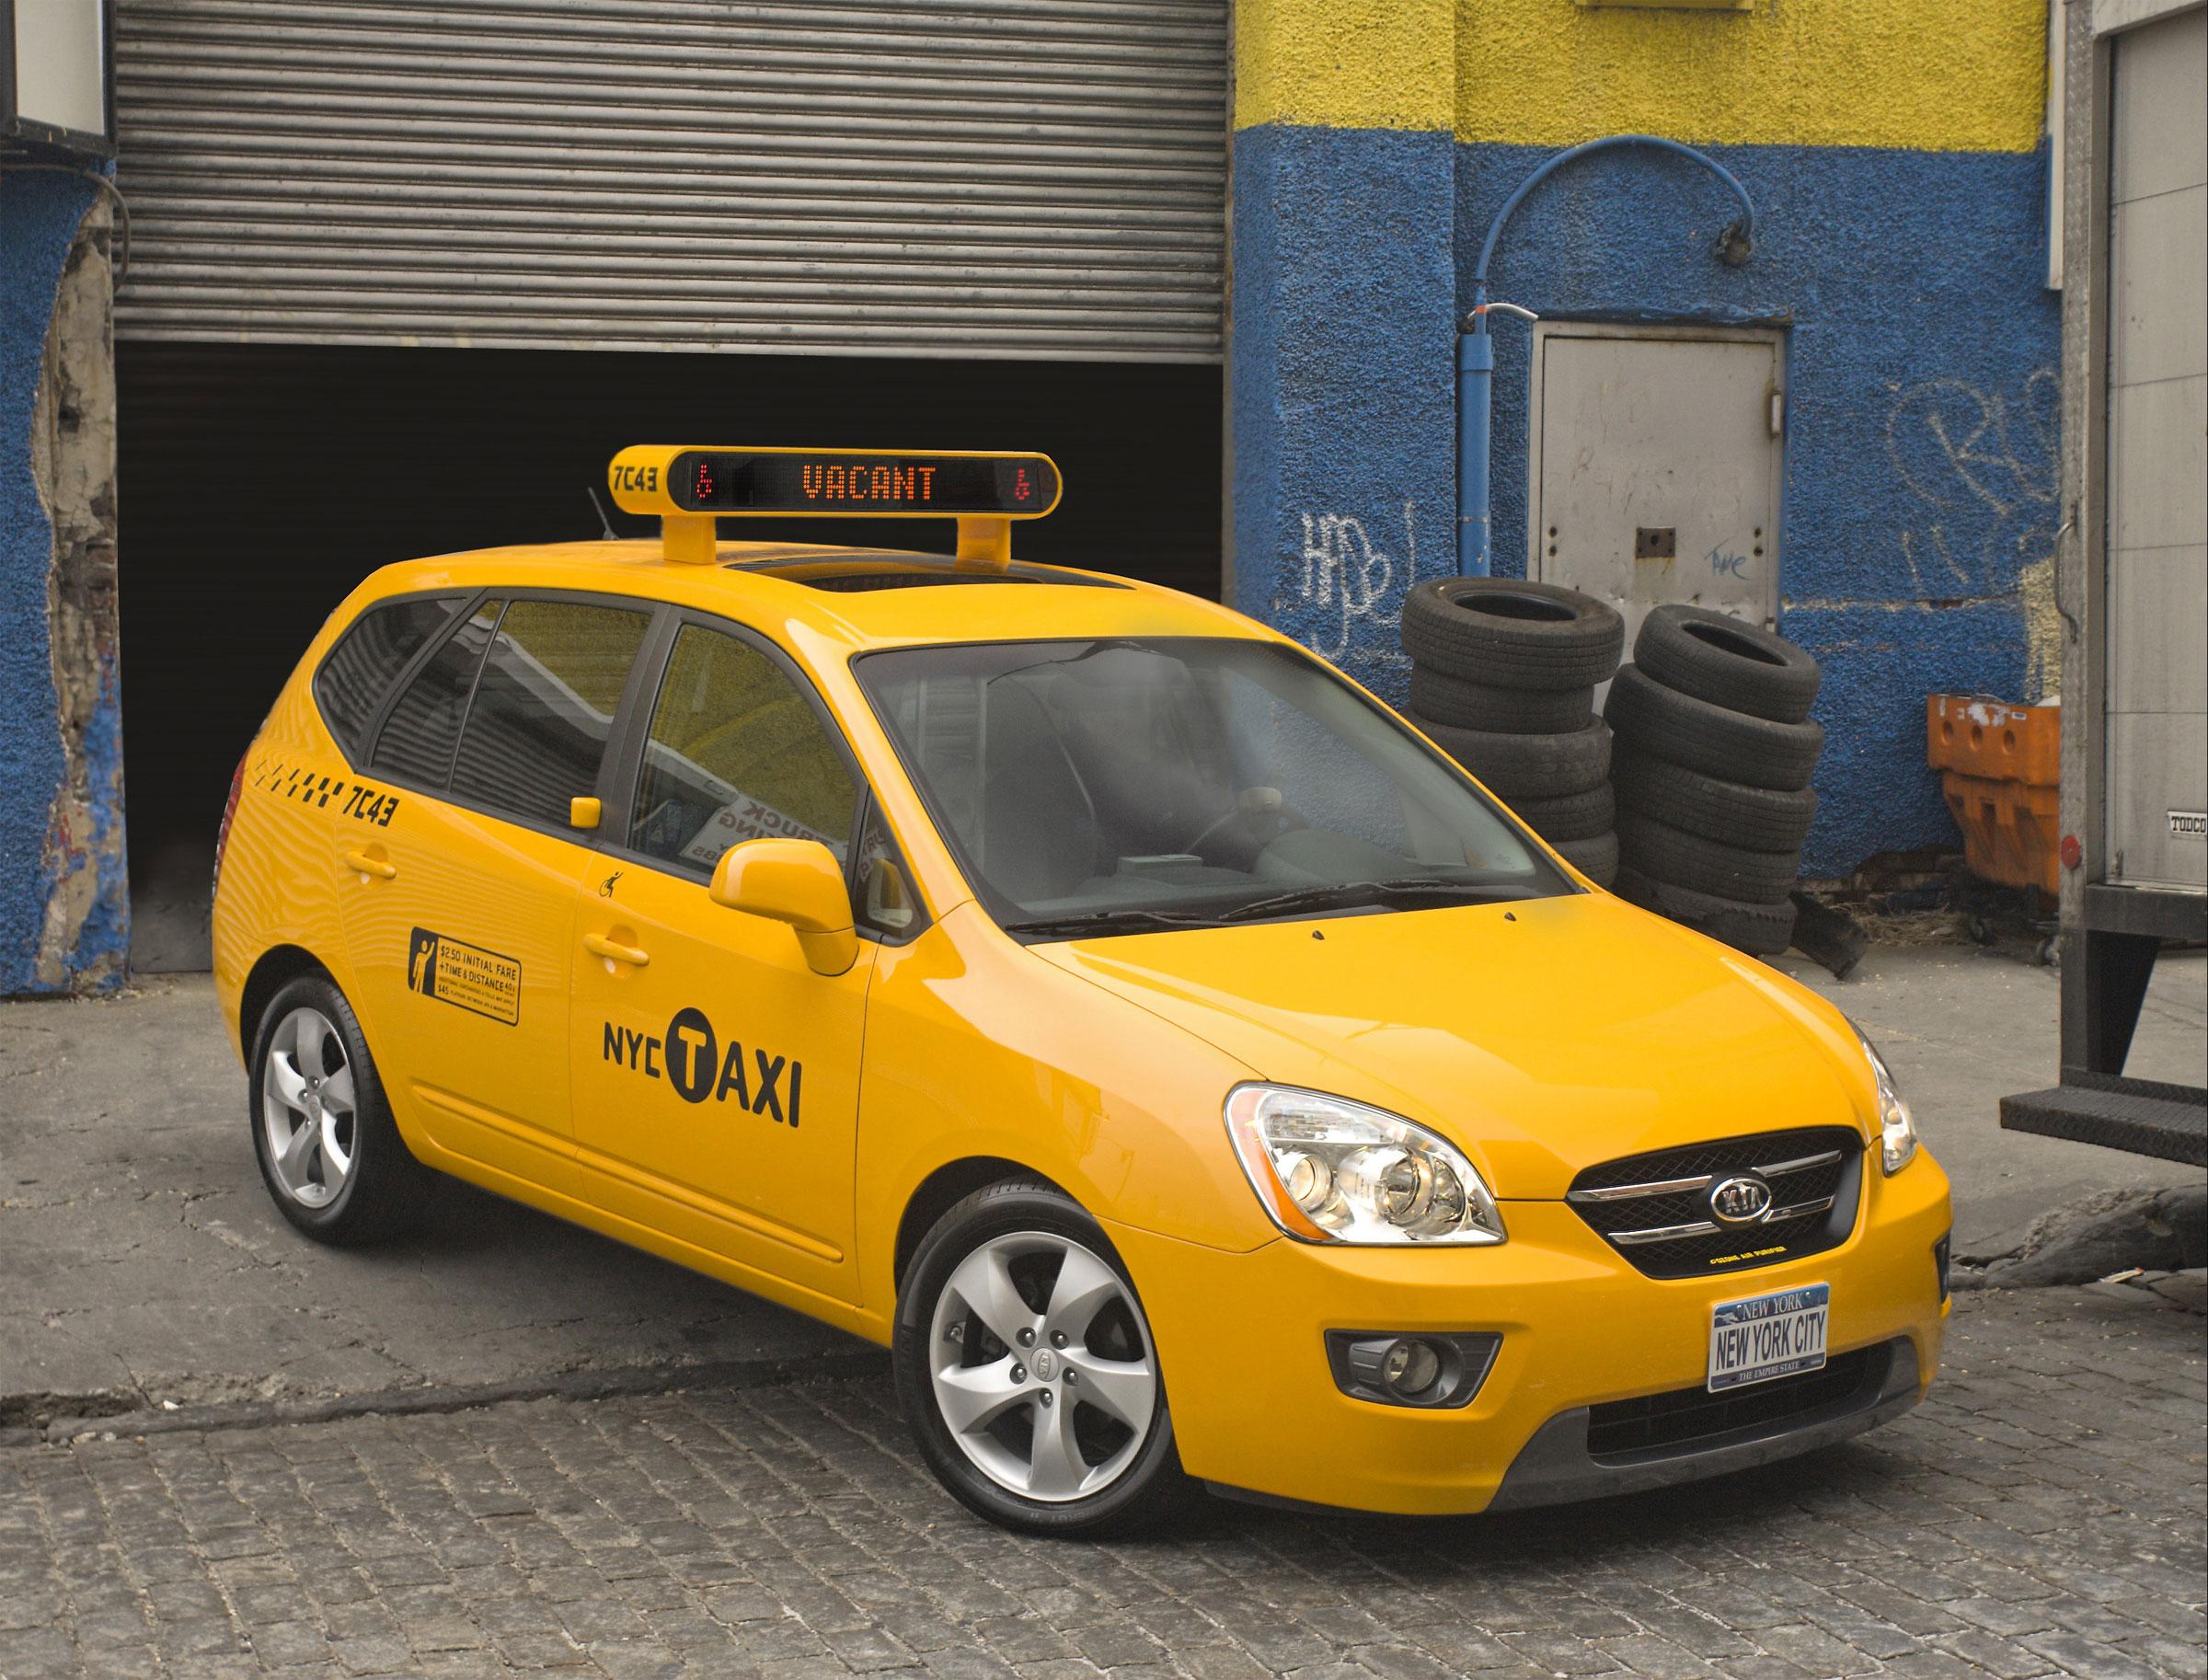 2007 Kia Rondo Taxi Cab Top Speed